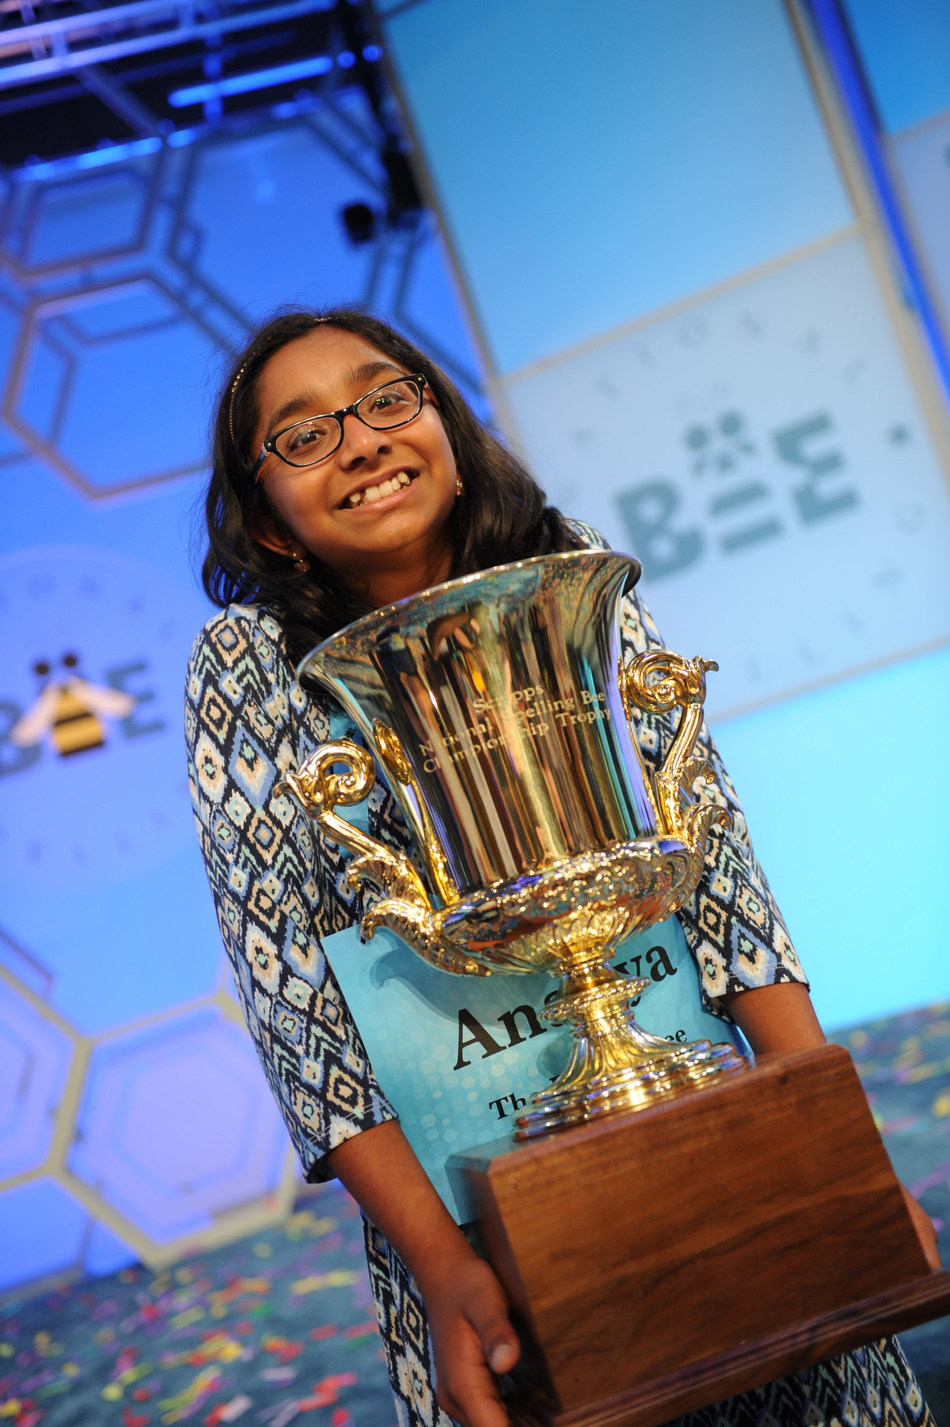 Ananya Vinay, a 12-year-old speller from Fresno, California, is champion of the 2017 Scripps National Spelling Bee, presented by Kindle. Credit: Mark Bowen / Scripps National Spelling Bee